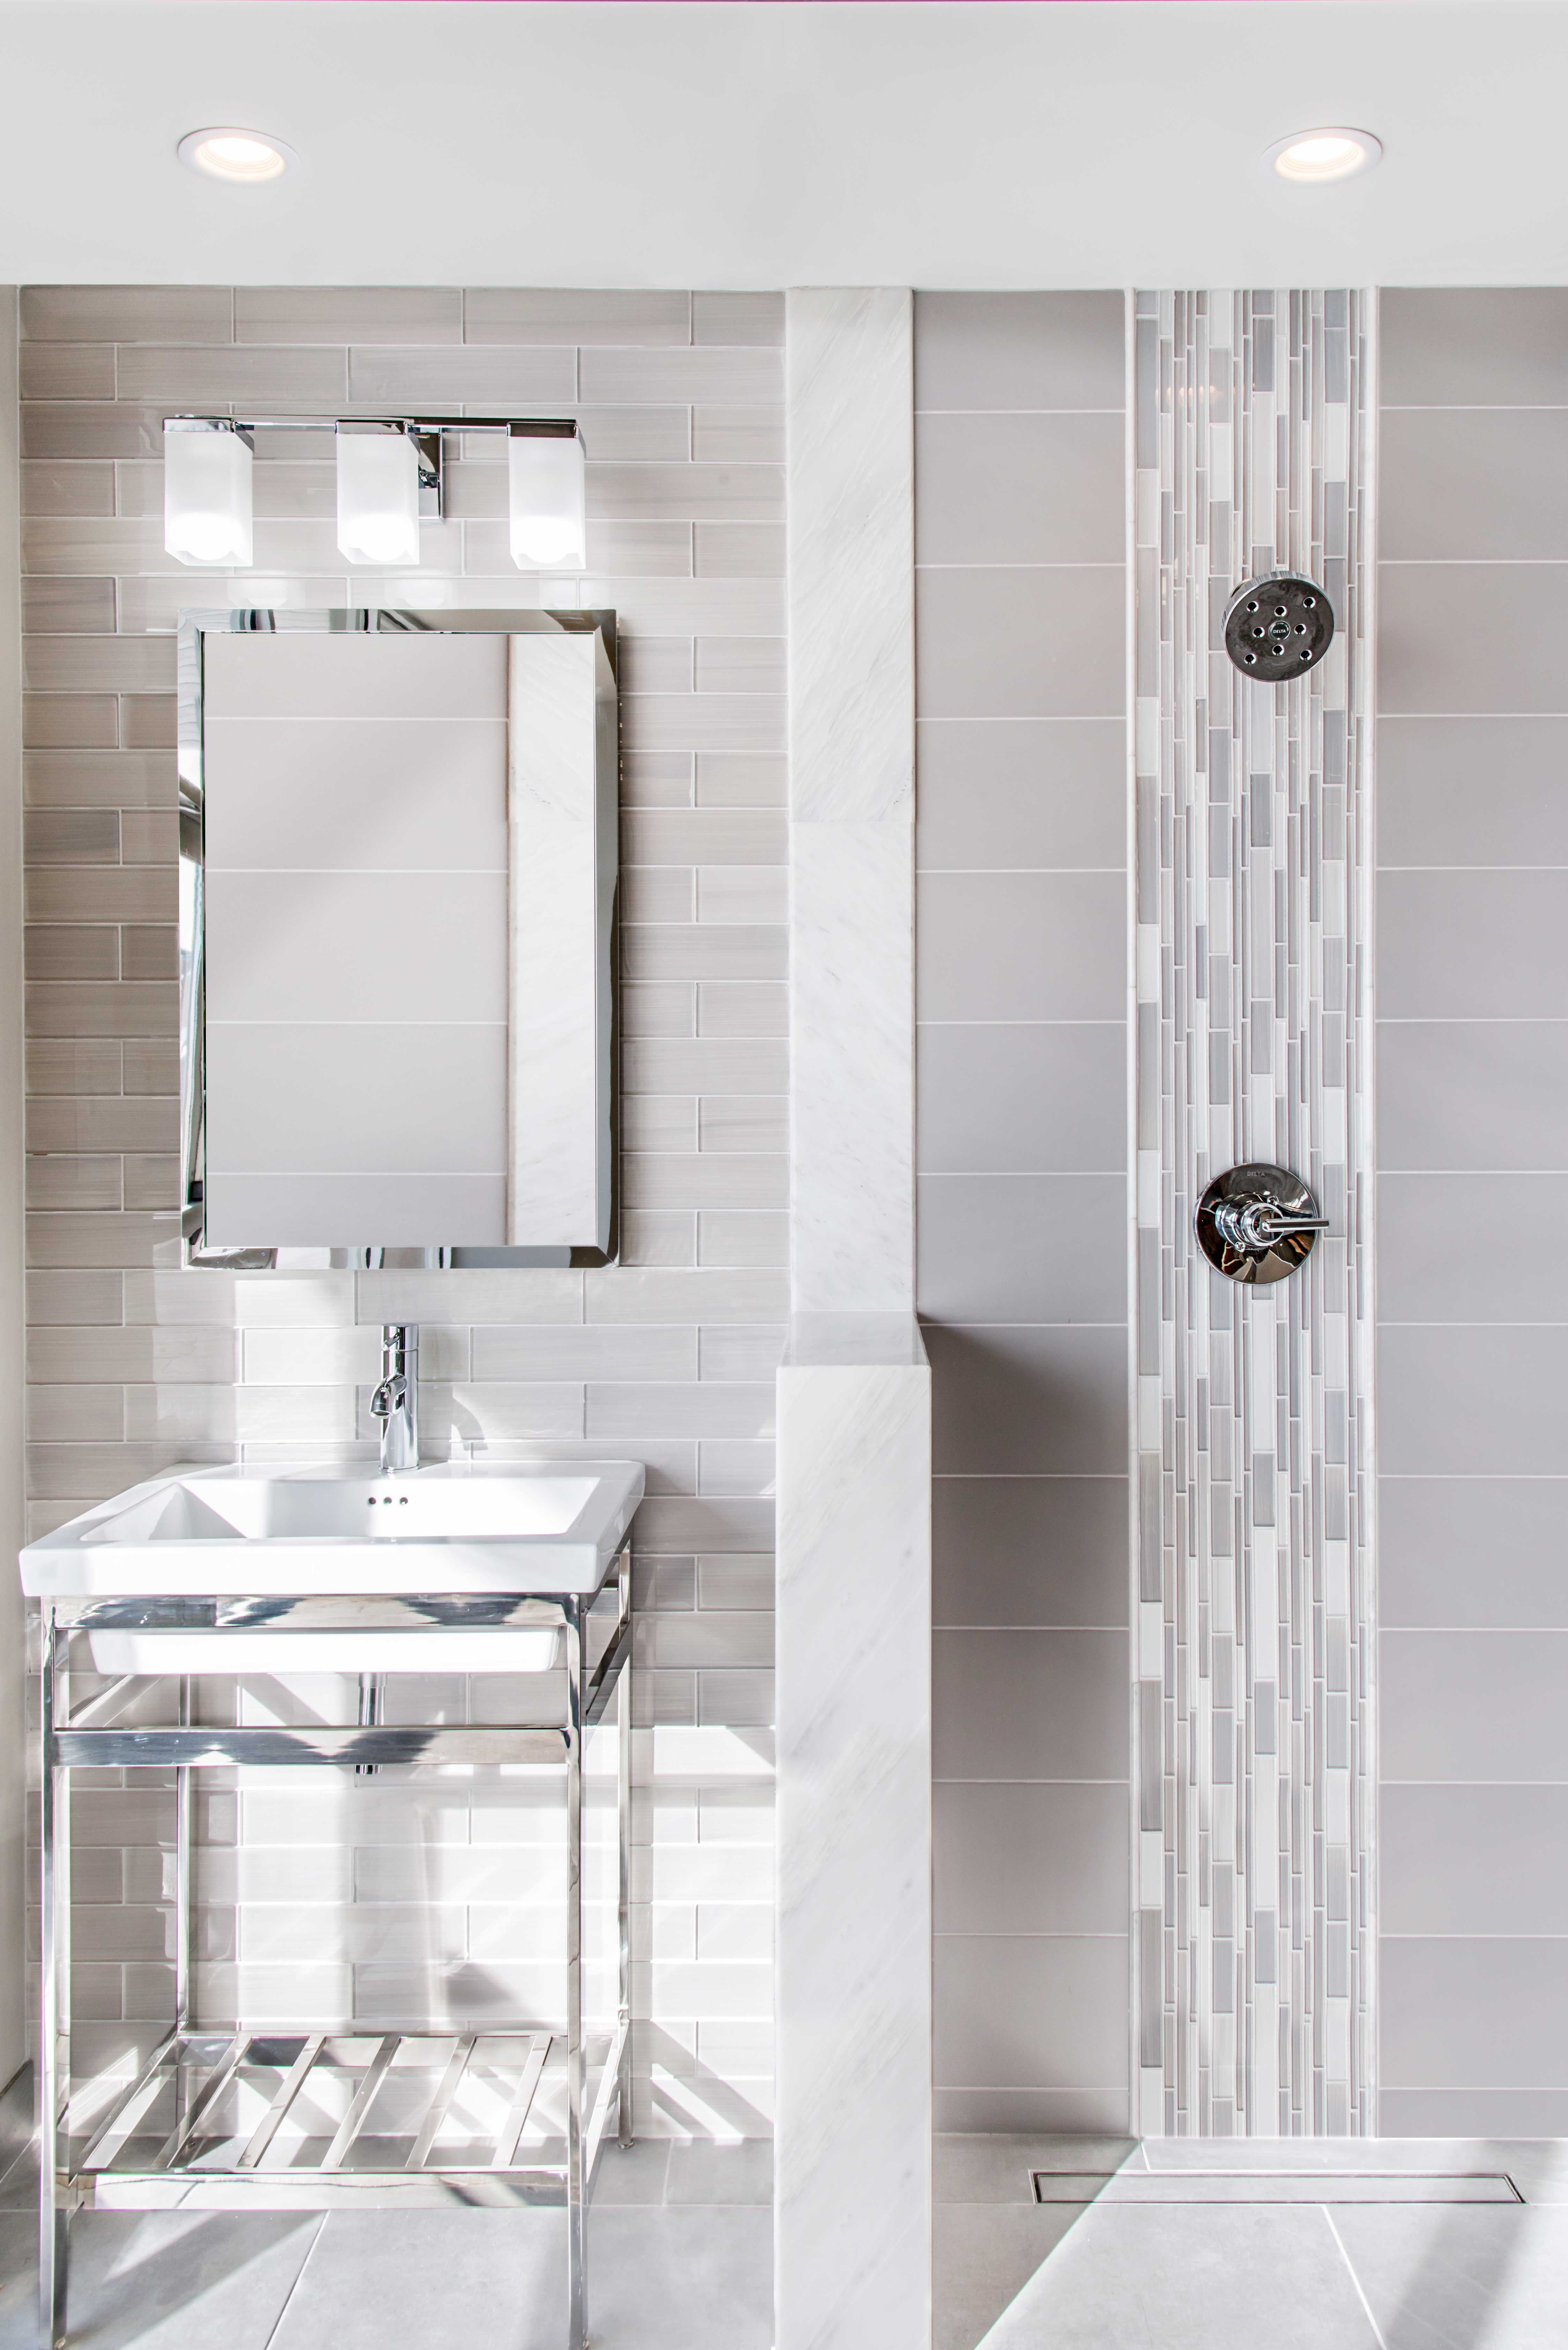 The tile shop design by kirsty georgian bathroom style - The Contemporary Style Of This Glossy Mosaic Tile Comes From A Mix Of Subtle Taupe And Bathroom Tile Designsbathroom